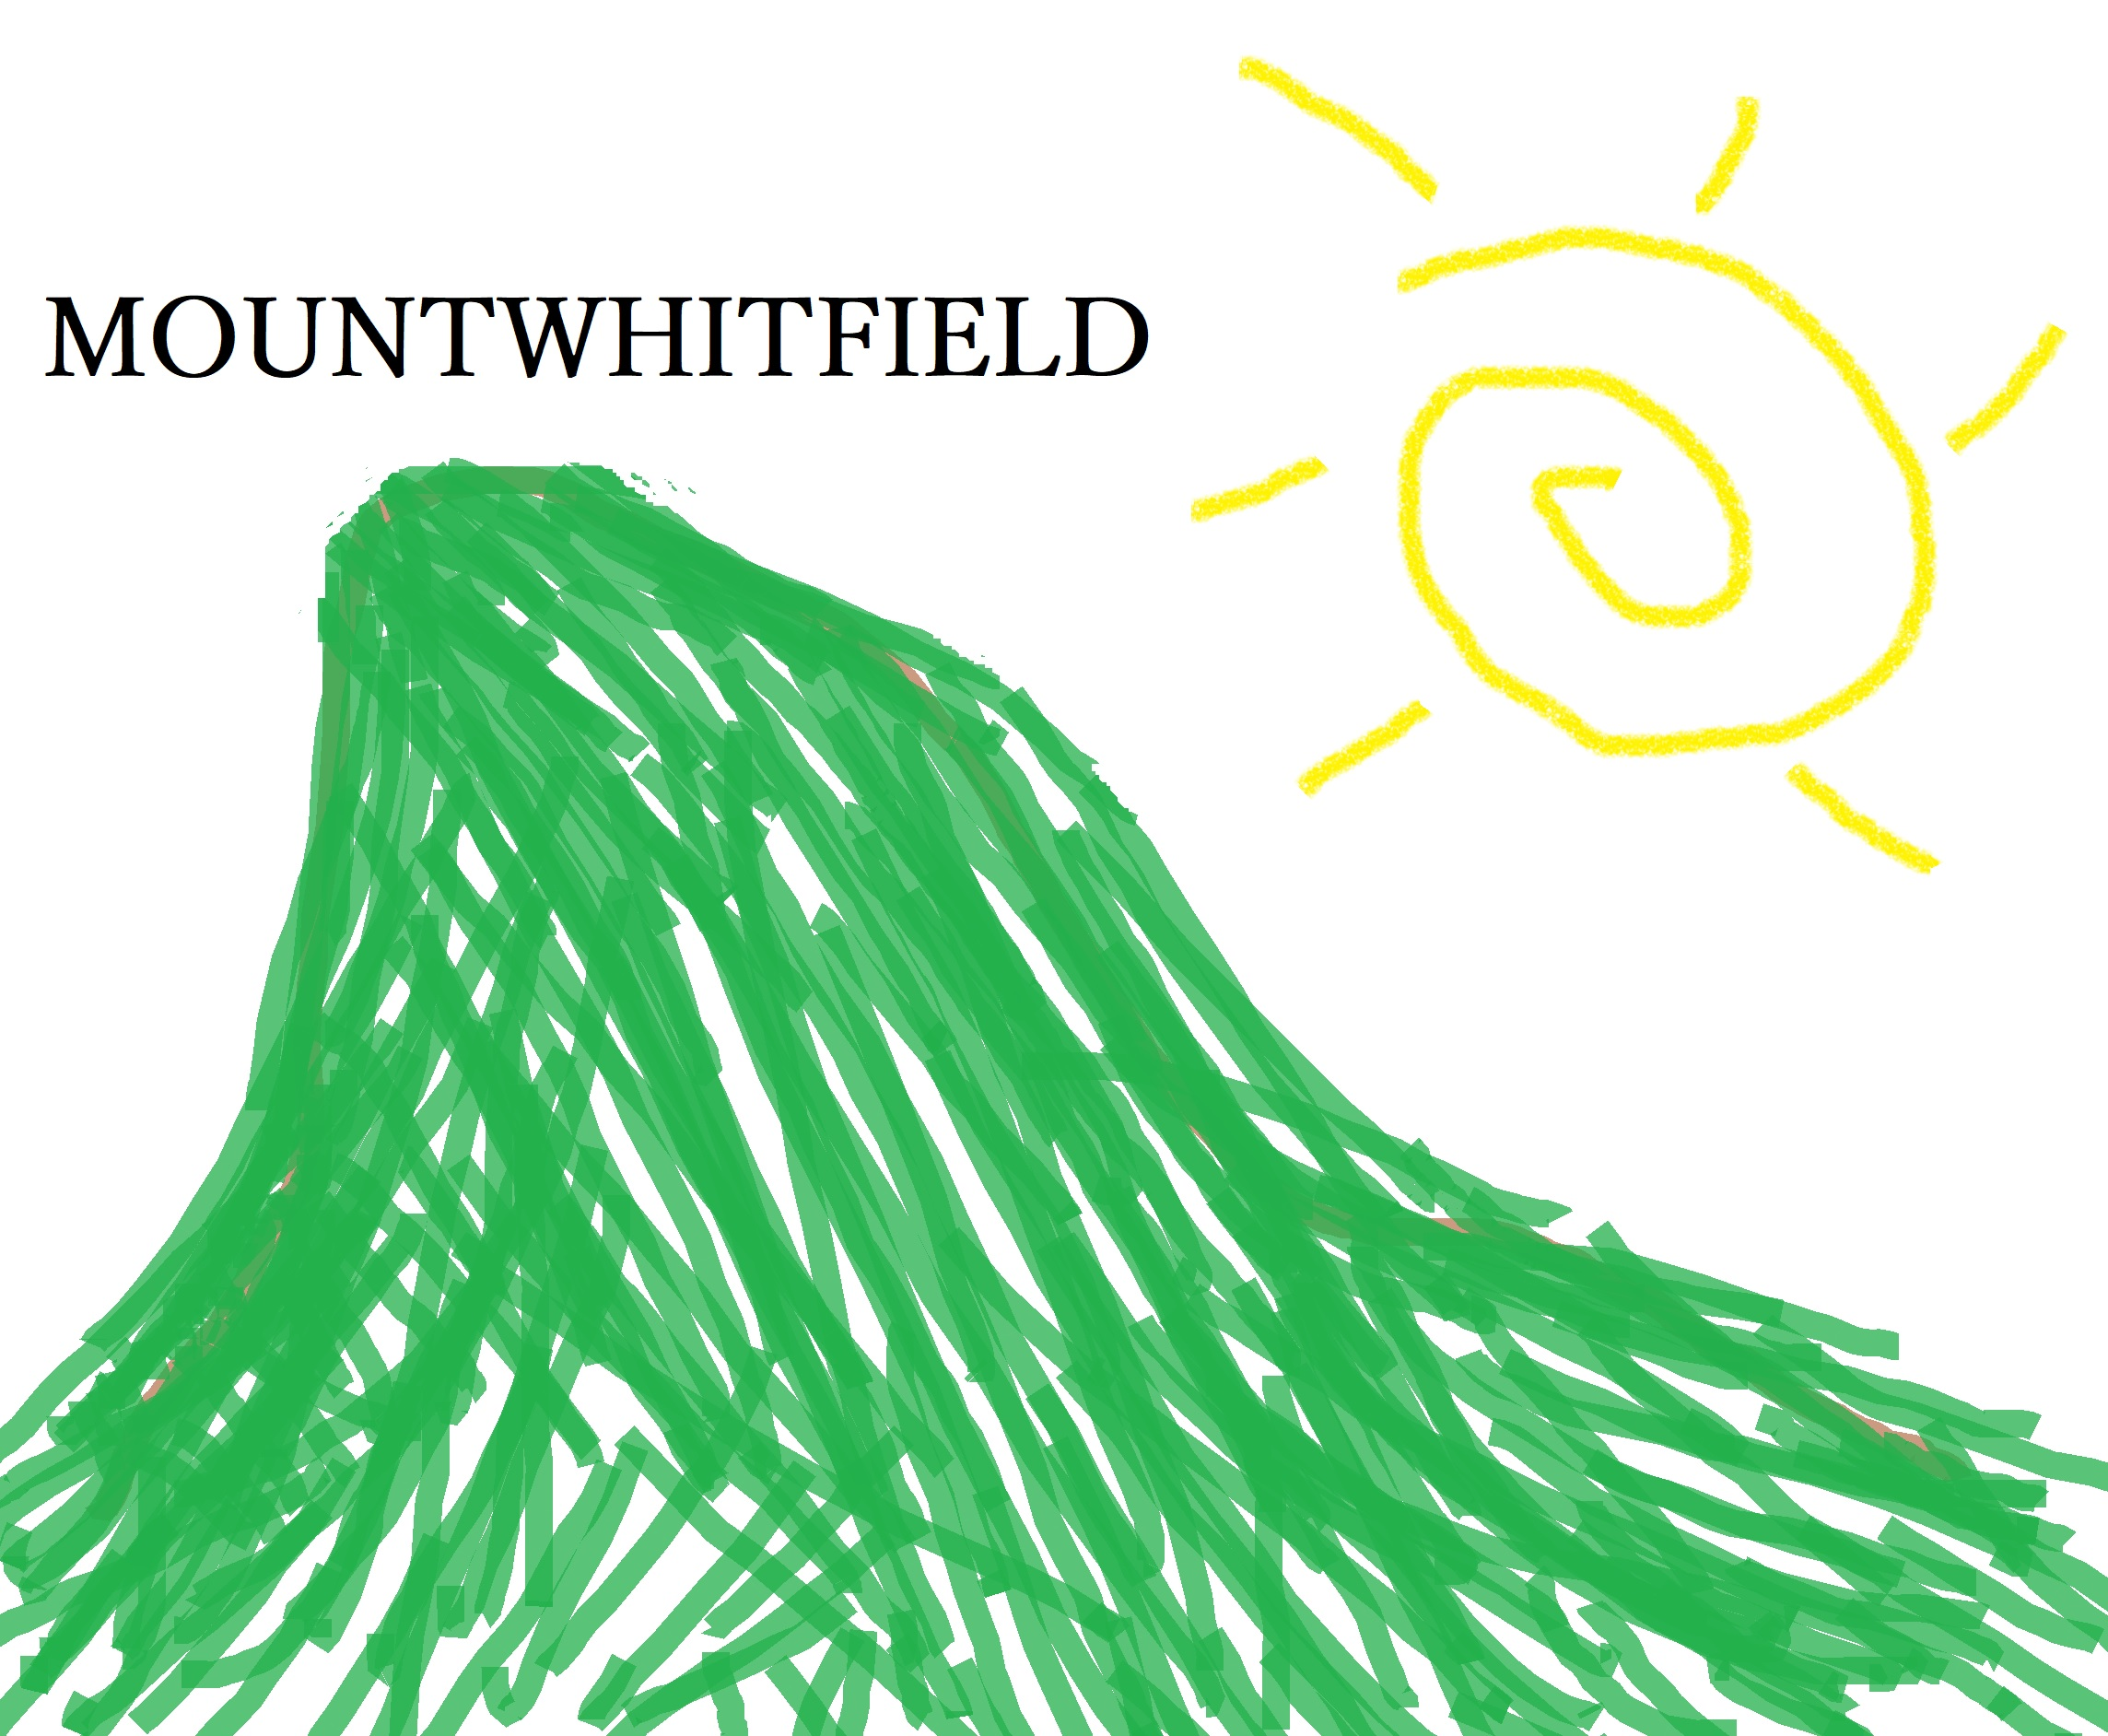 MOUNTWHITFIELD